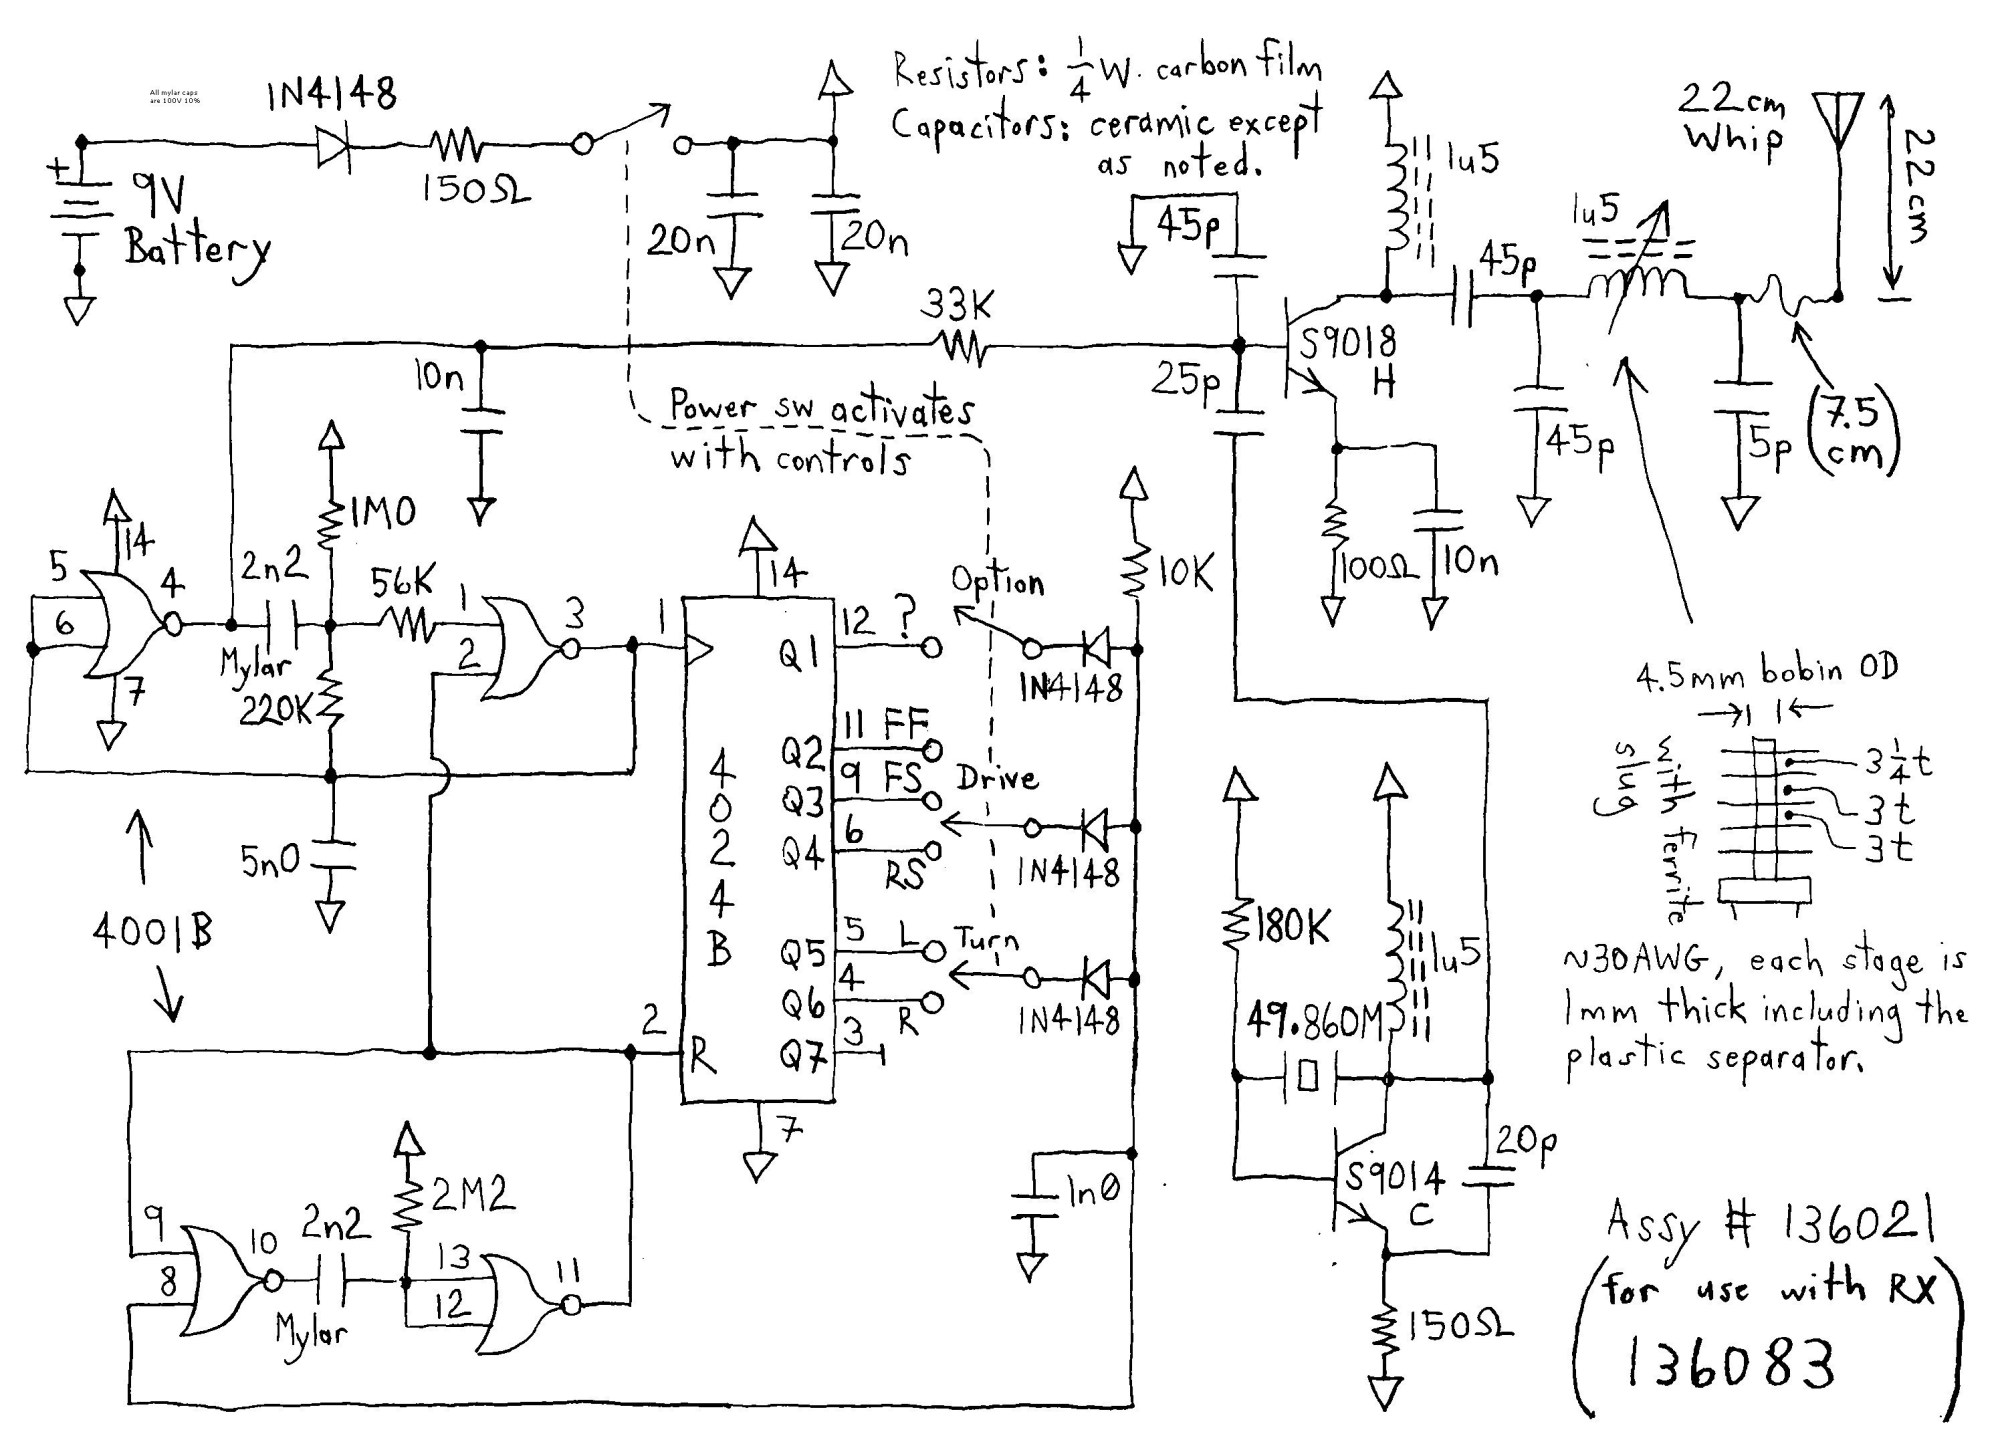 hight resolution of 2991x2169 open source drawing program elegant automotive wiring diagram open source drawing